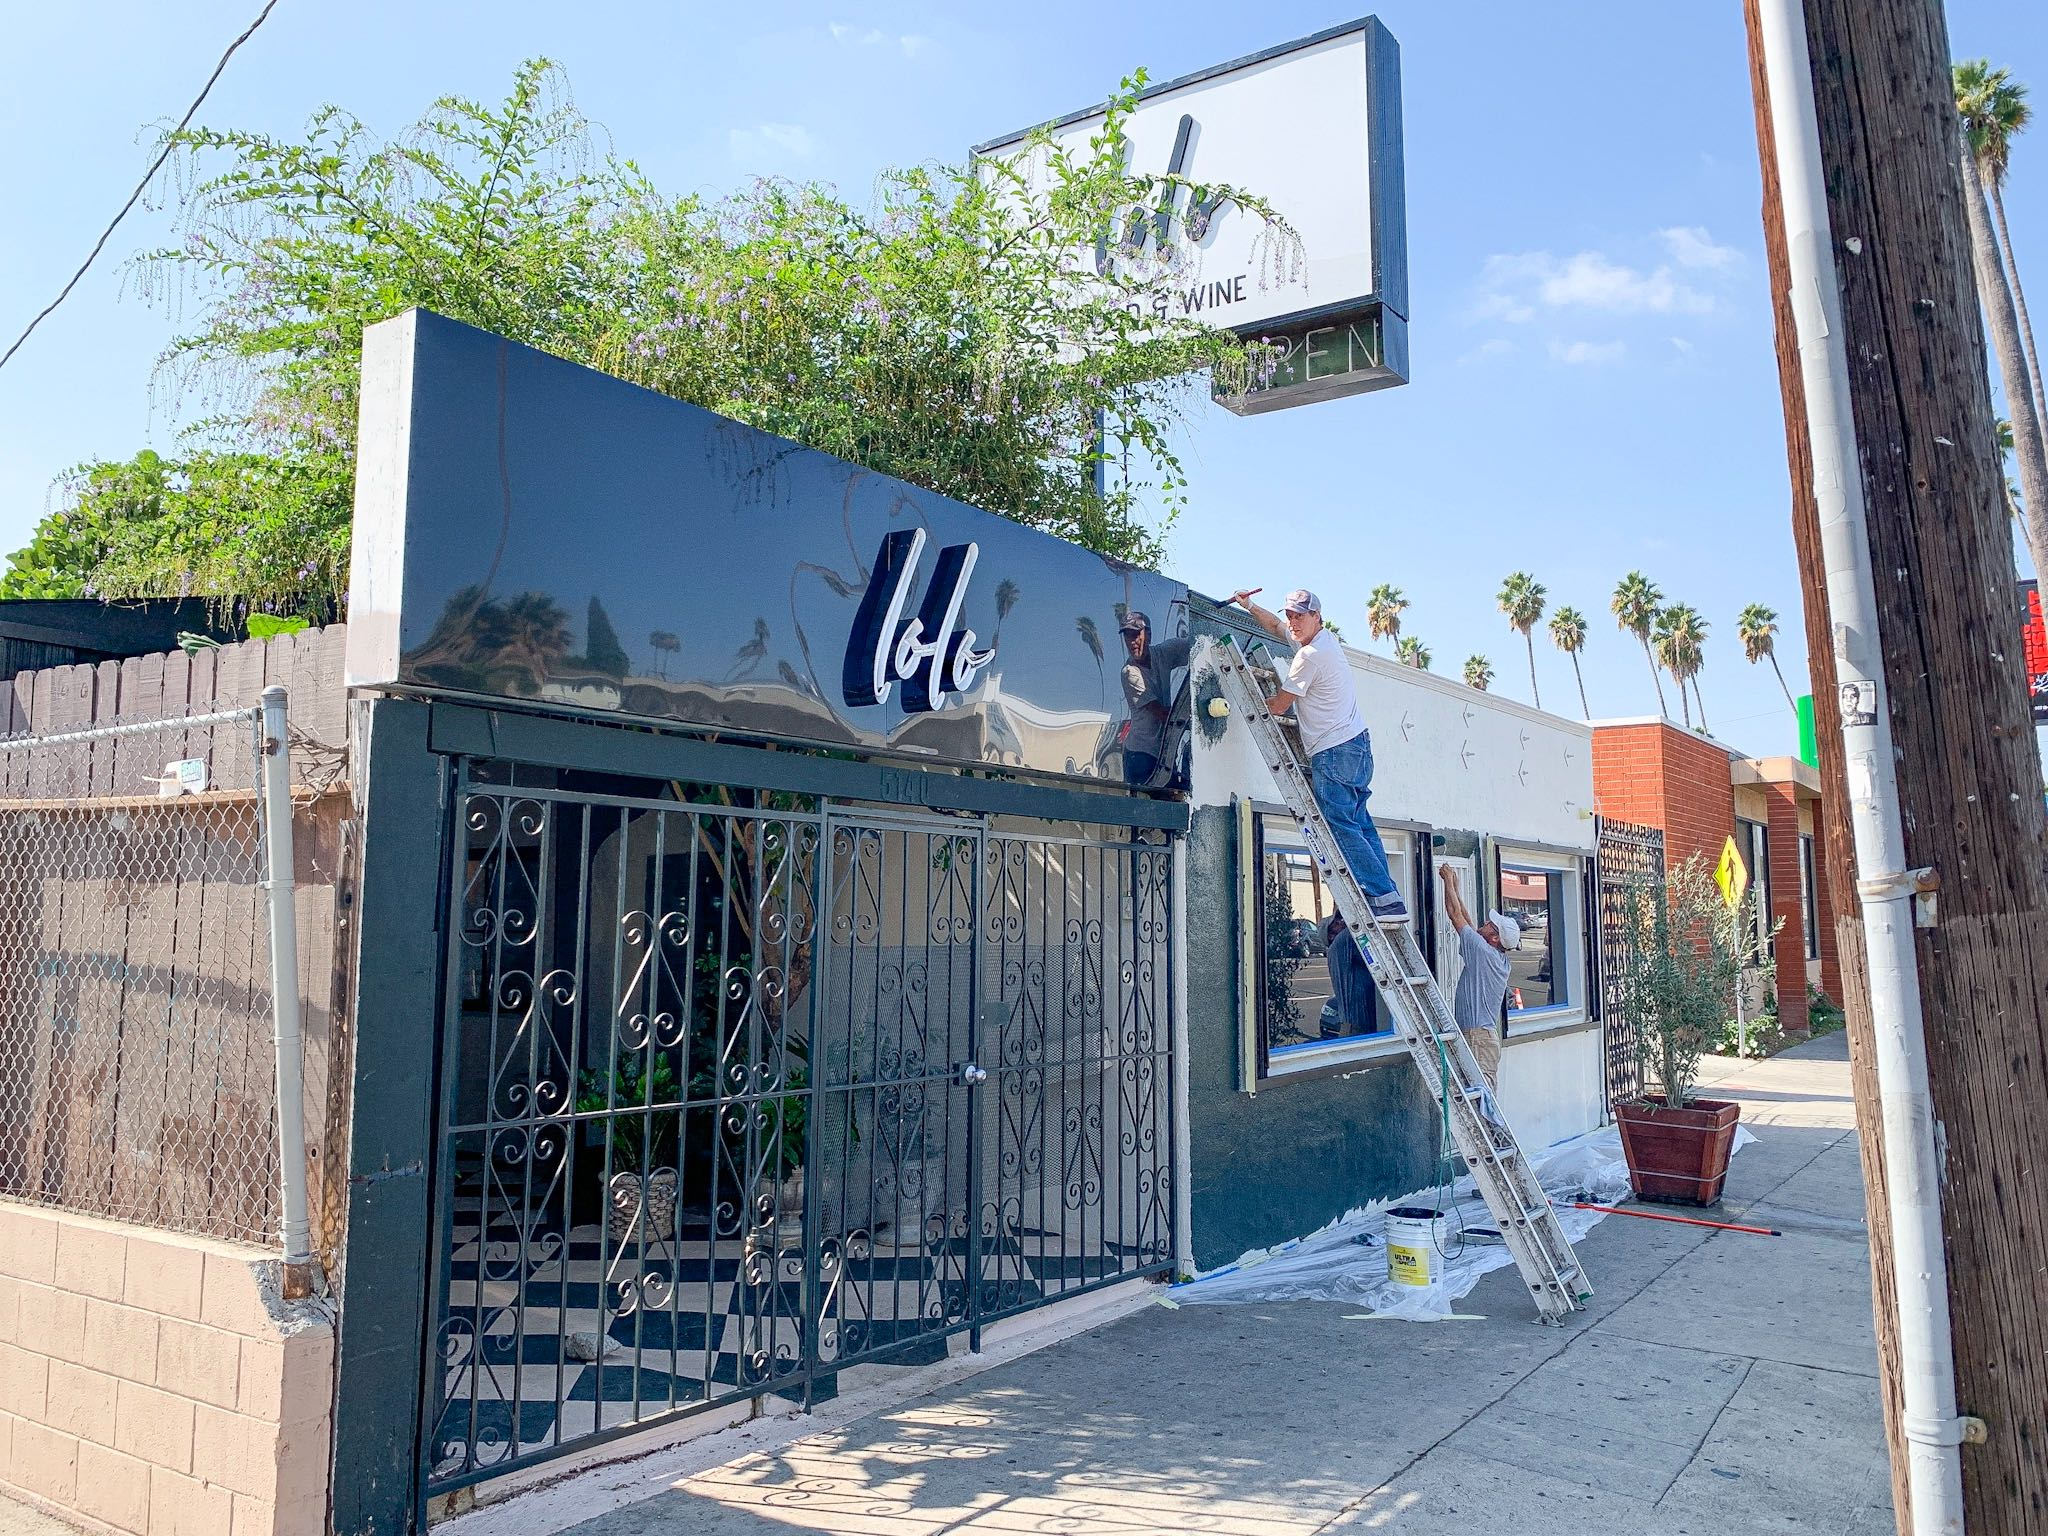 A new wine bar gets a fresh coat of black paint on the exterior.